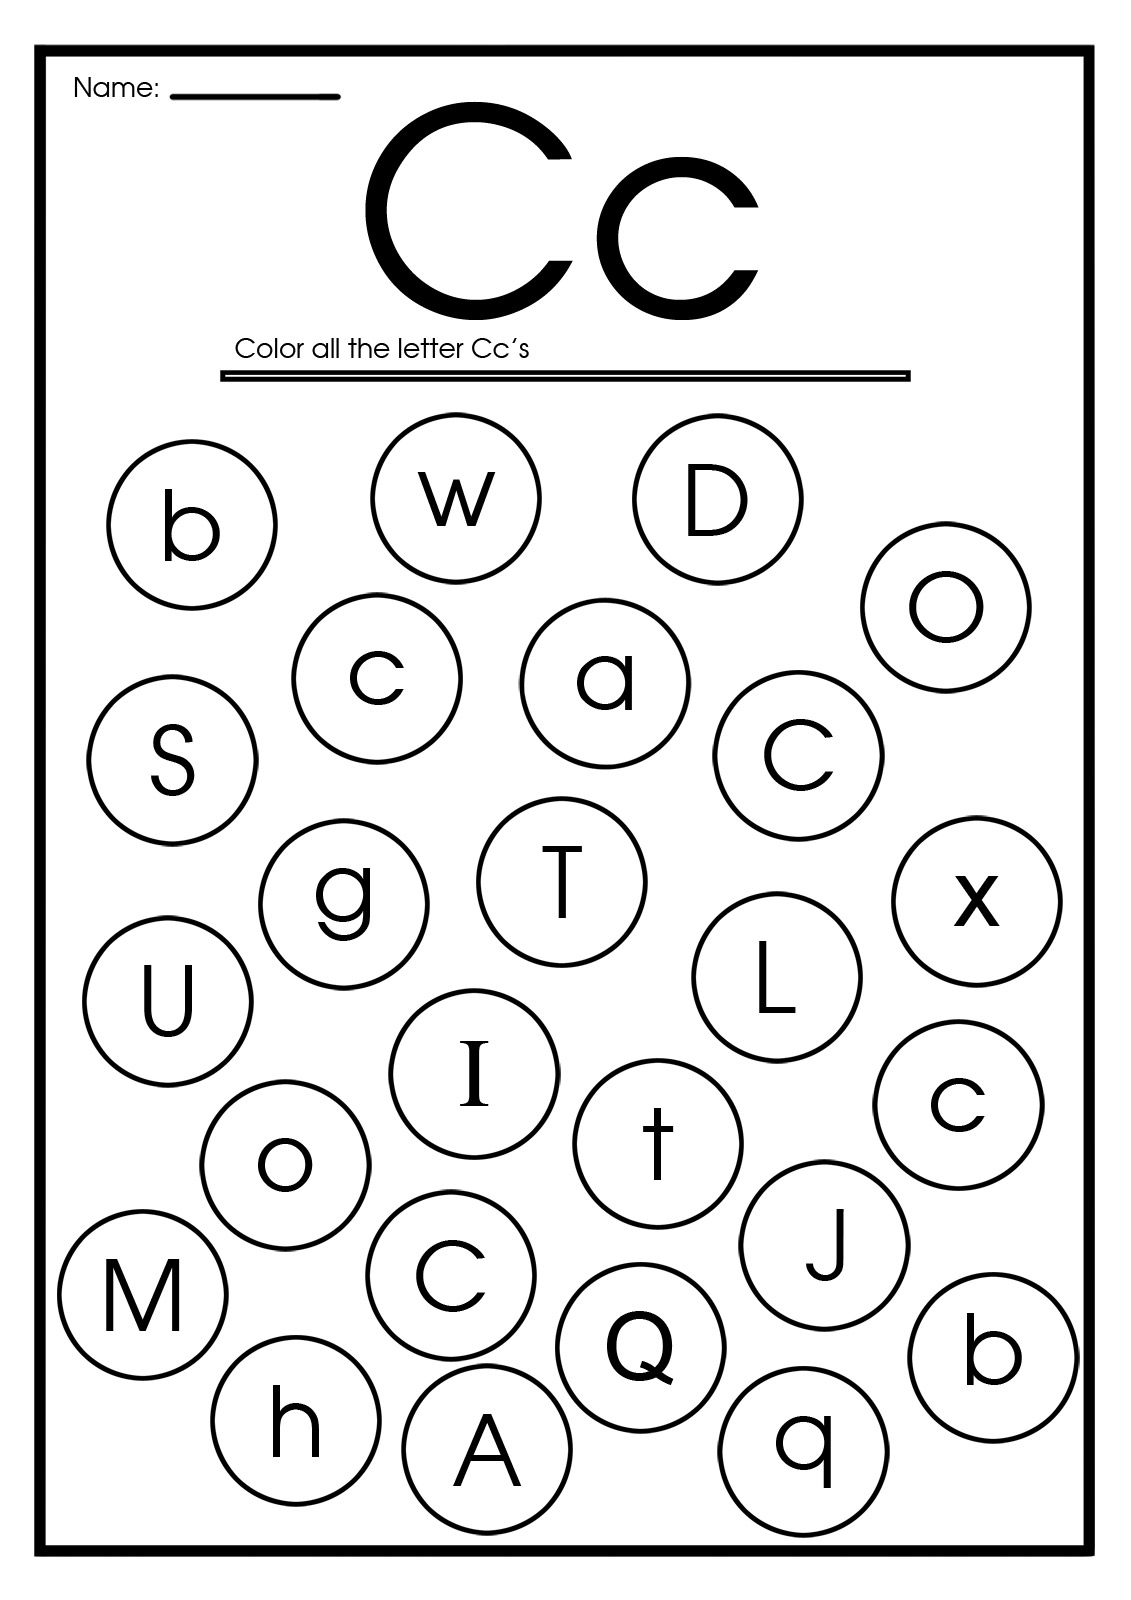 Posts Ms Beth Schumacher Athlos Leadership Academy - 35+ Phonics Letter C Worksheets For Kindergarten Images